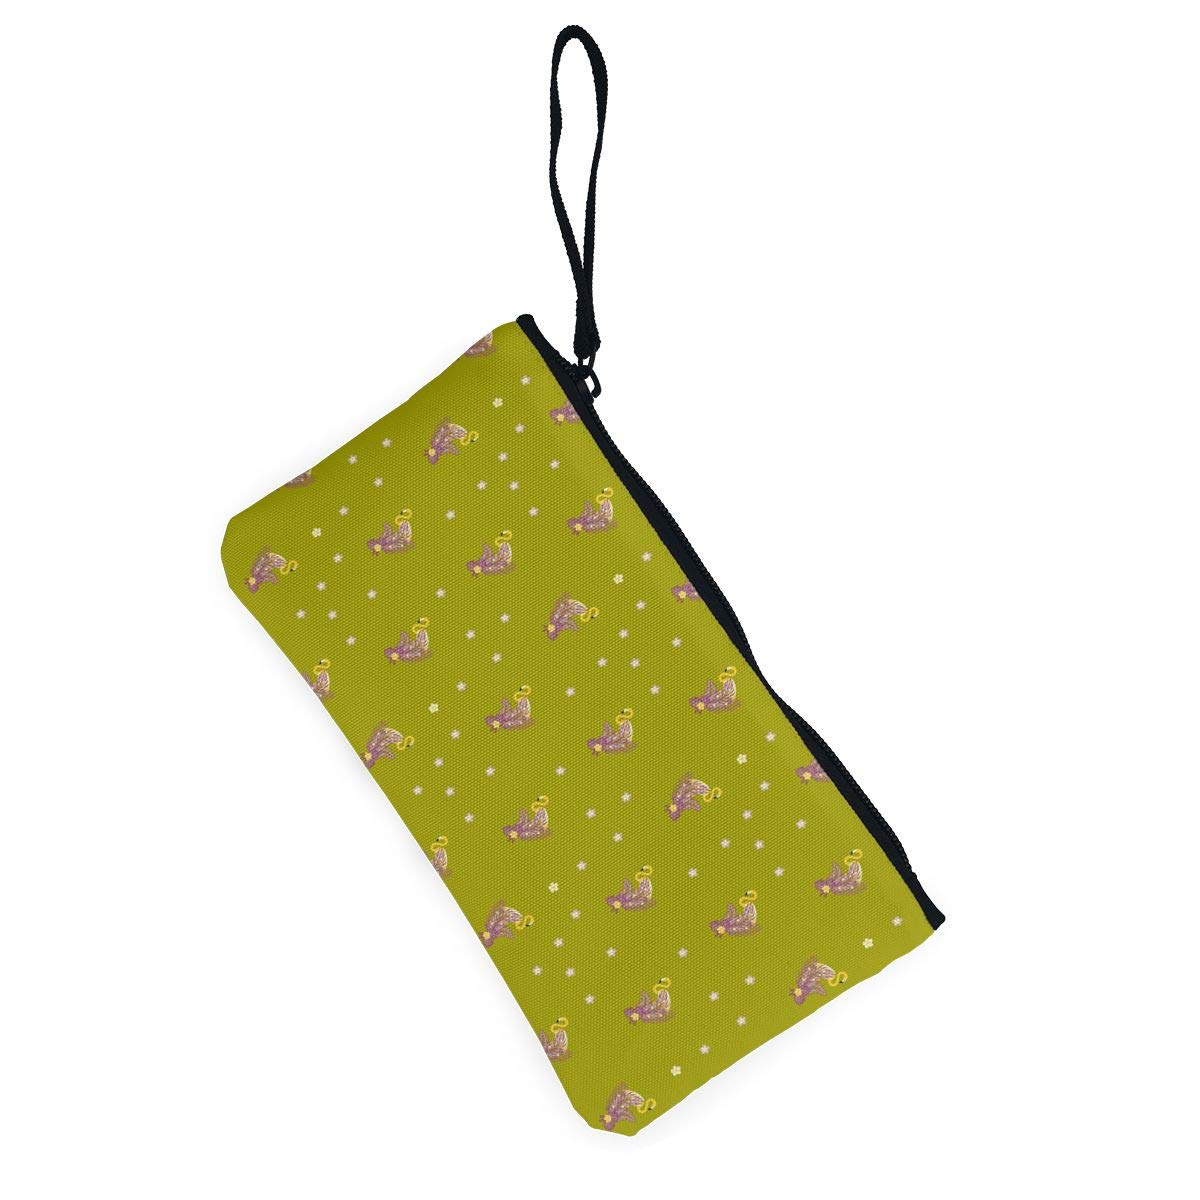 Flamingos,Tropical Leaves Pattern Canvas Coin Purse Cute Change Pouch Wallet Bag Multifunctional Cellphone Bag with Handle